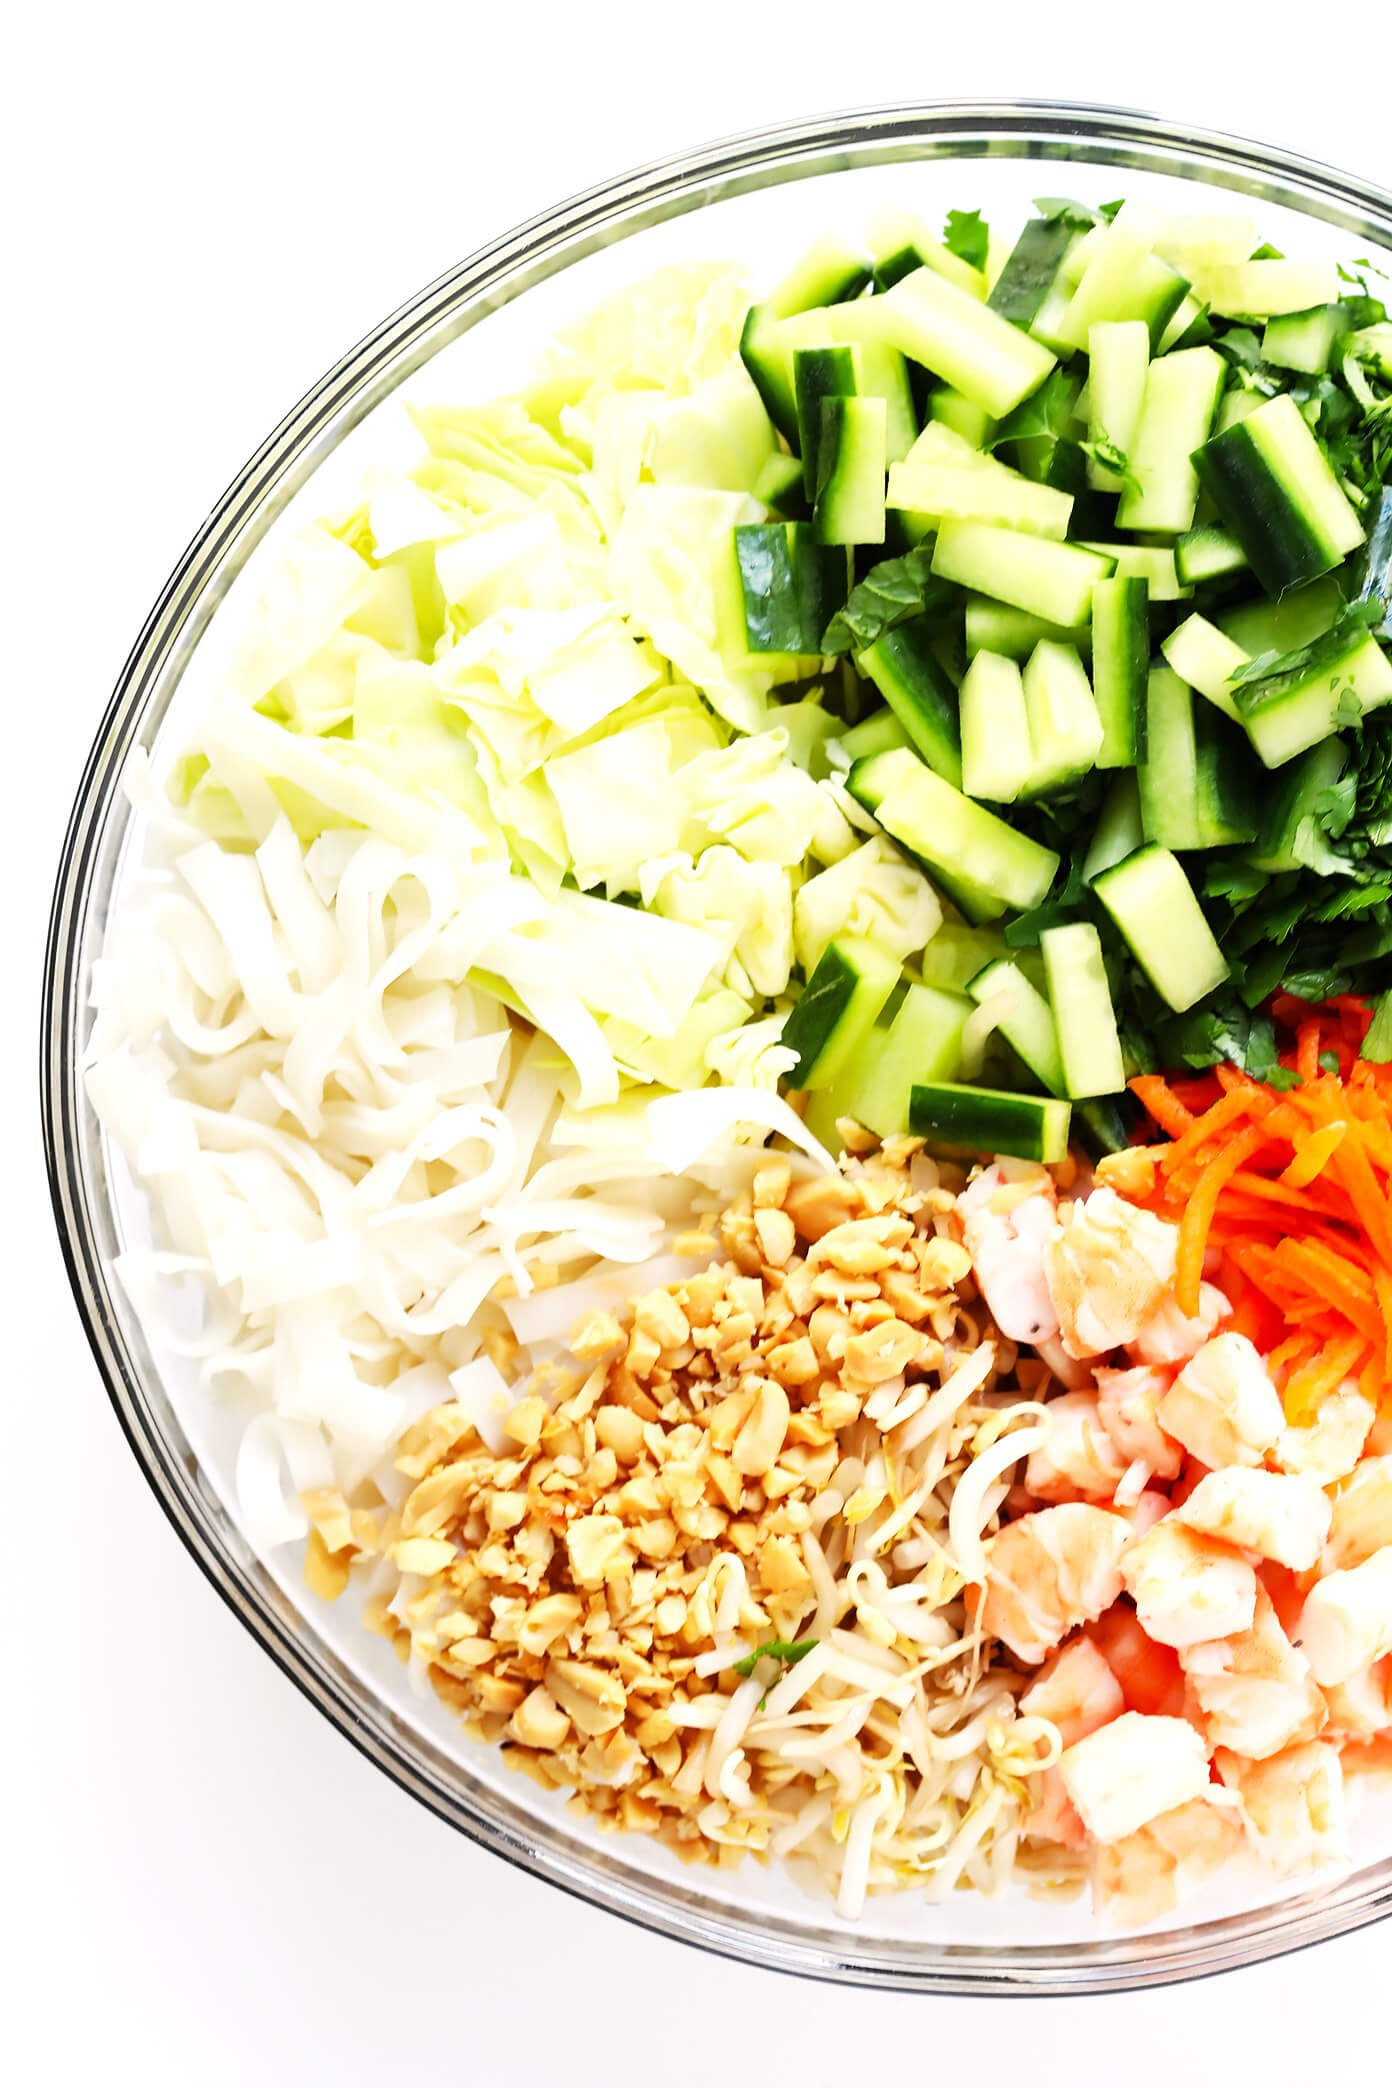 Vietnamese Spring Roll Salad ingredients in bowl